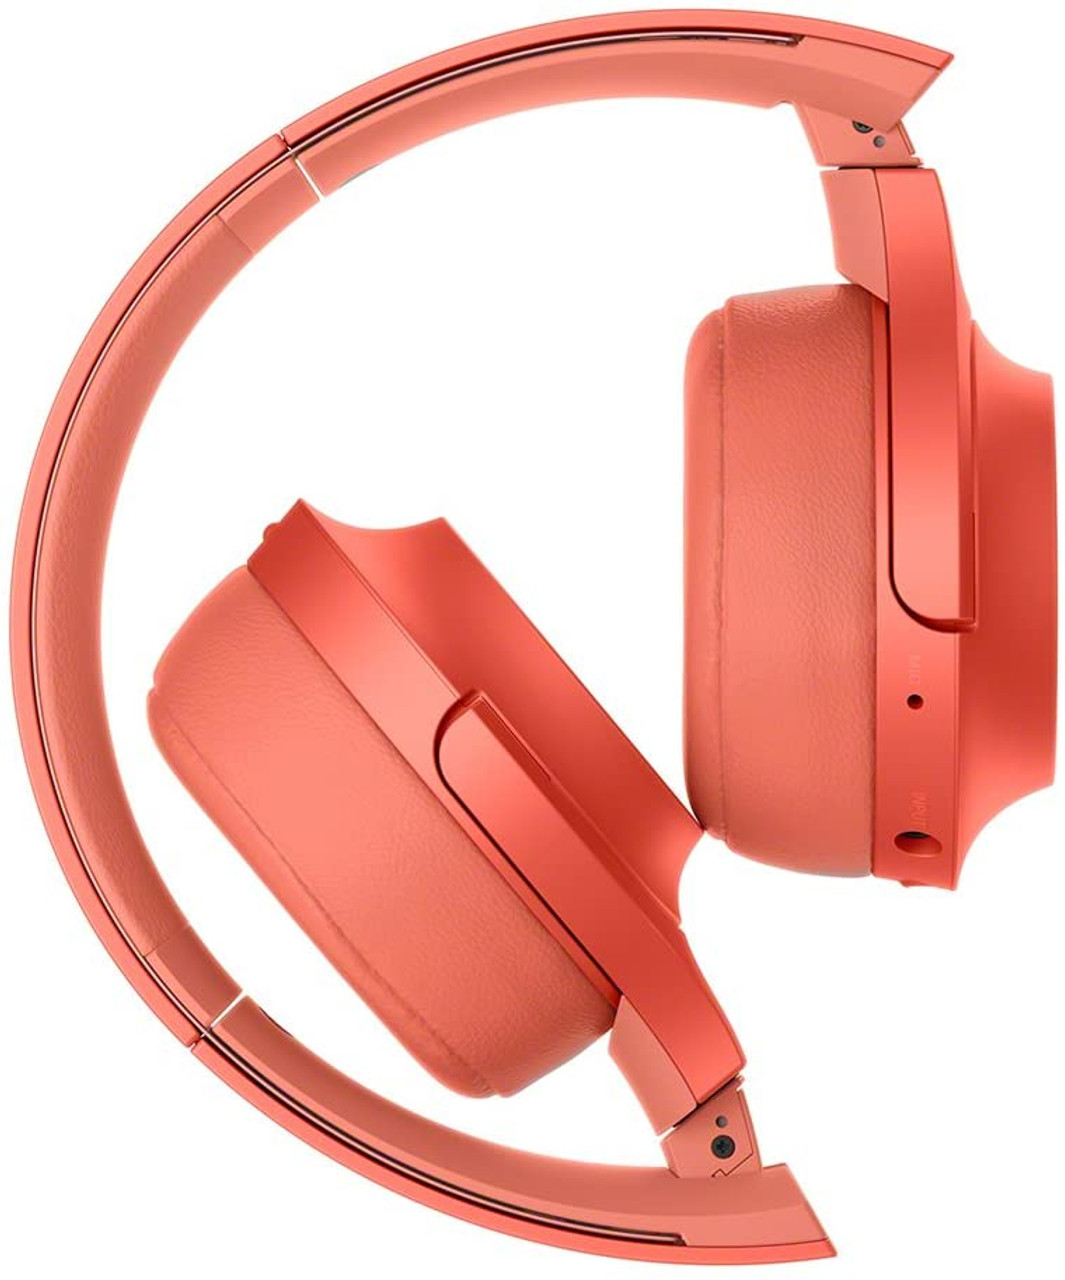 Sony Bluetooth WH-H800 Headphones Red